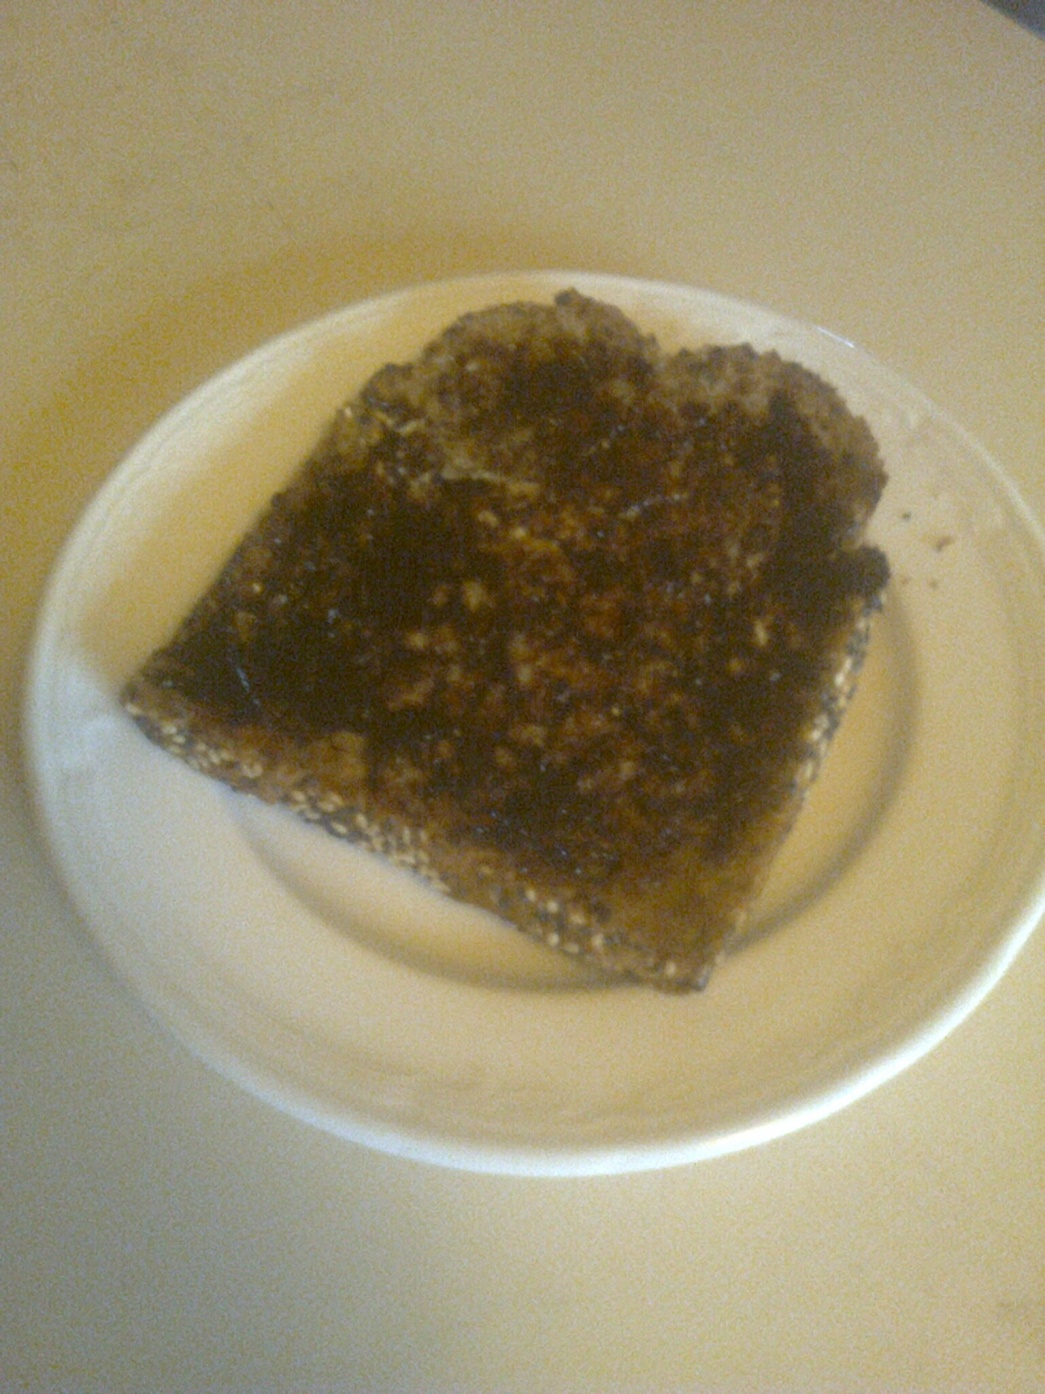 Click image for larger version  Name:Vegemite toast.jpg Views:70 Size:421.2 KB ID:71025